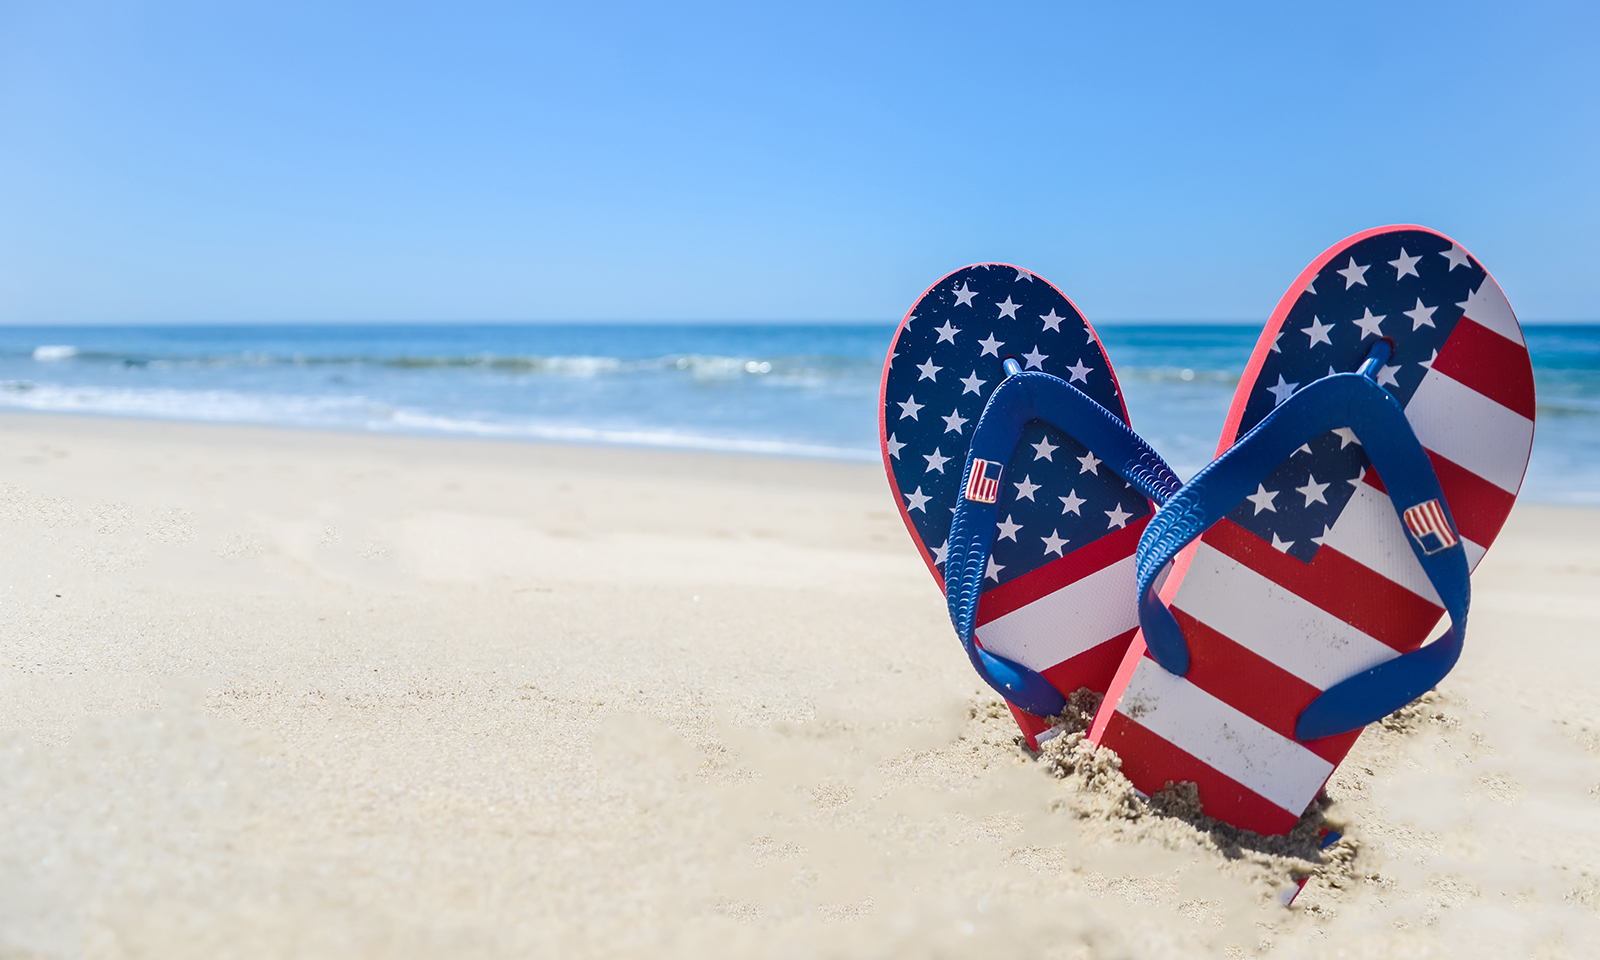 sandals-making-heart-shape-in-the-sand-on-the-beach